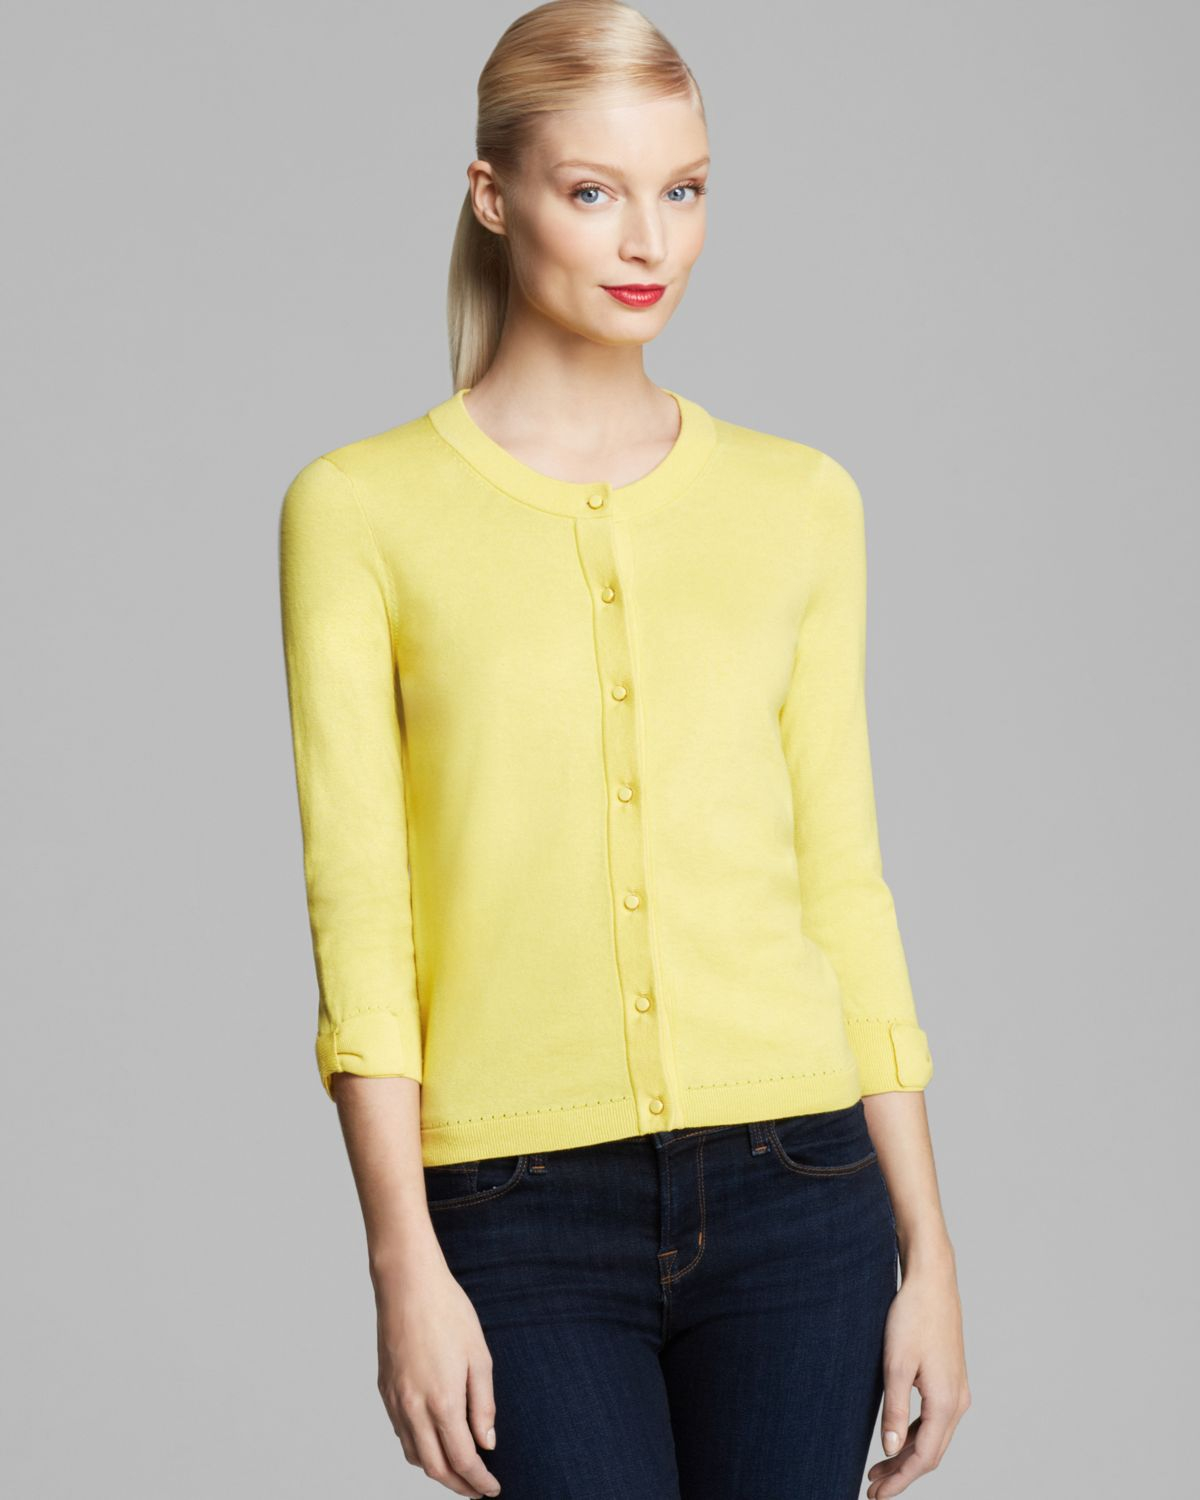 Kate spade new york Somerset Cardigan in Yellow | Lyst